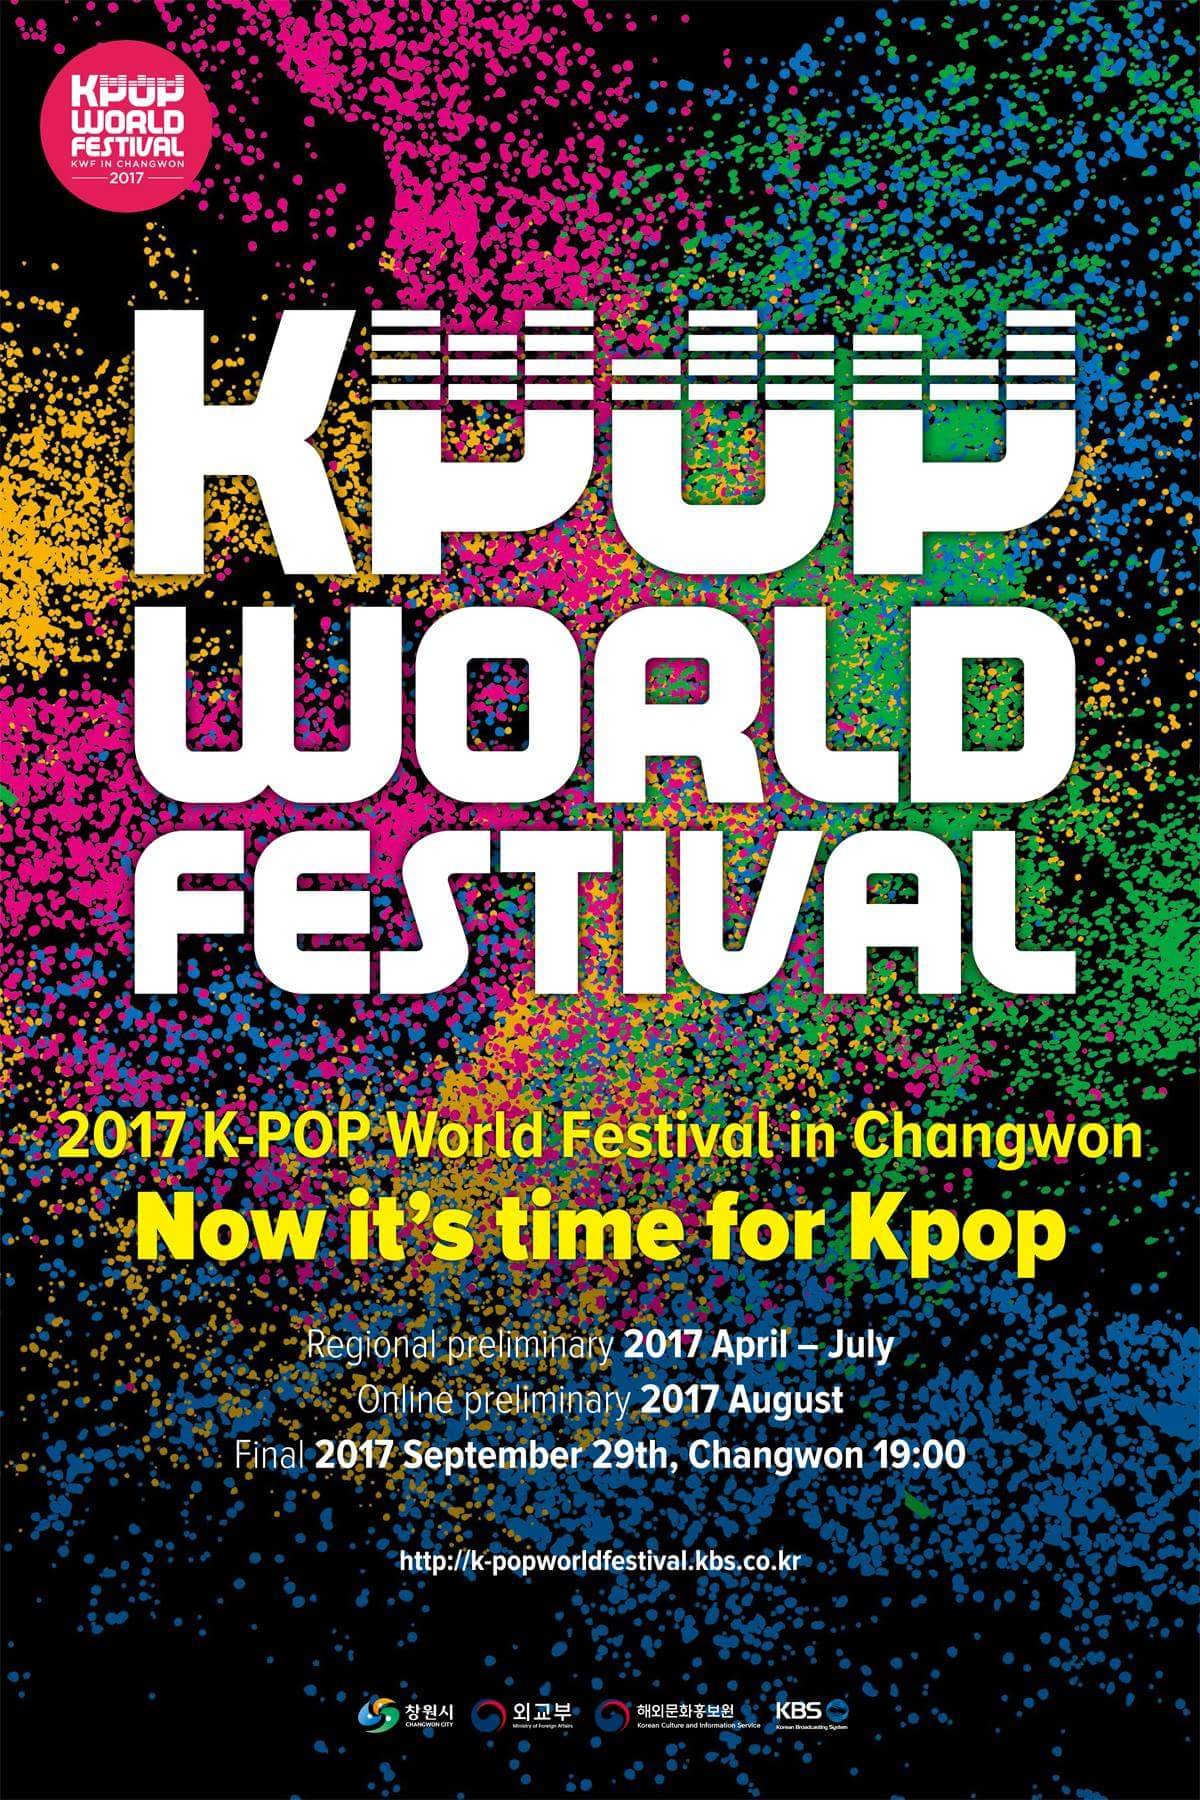 K-pop World Festival 2017(saungkorea.com)